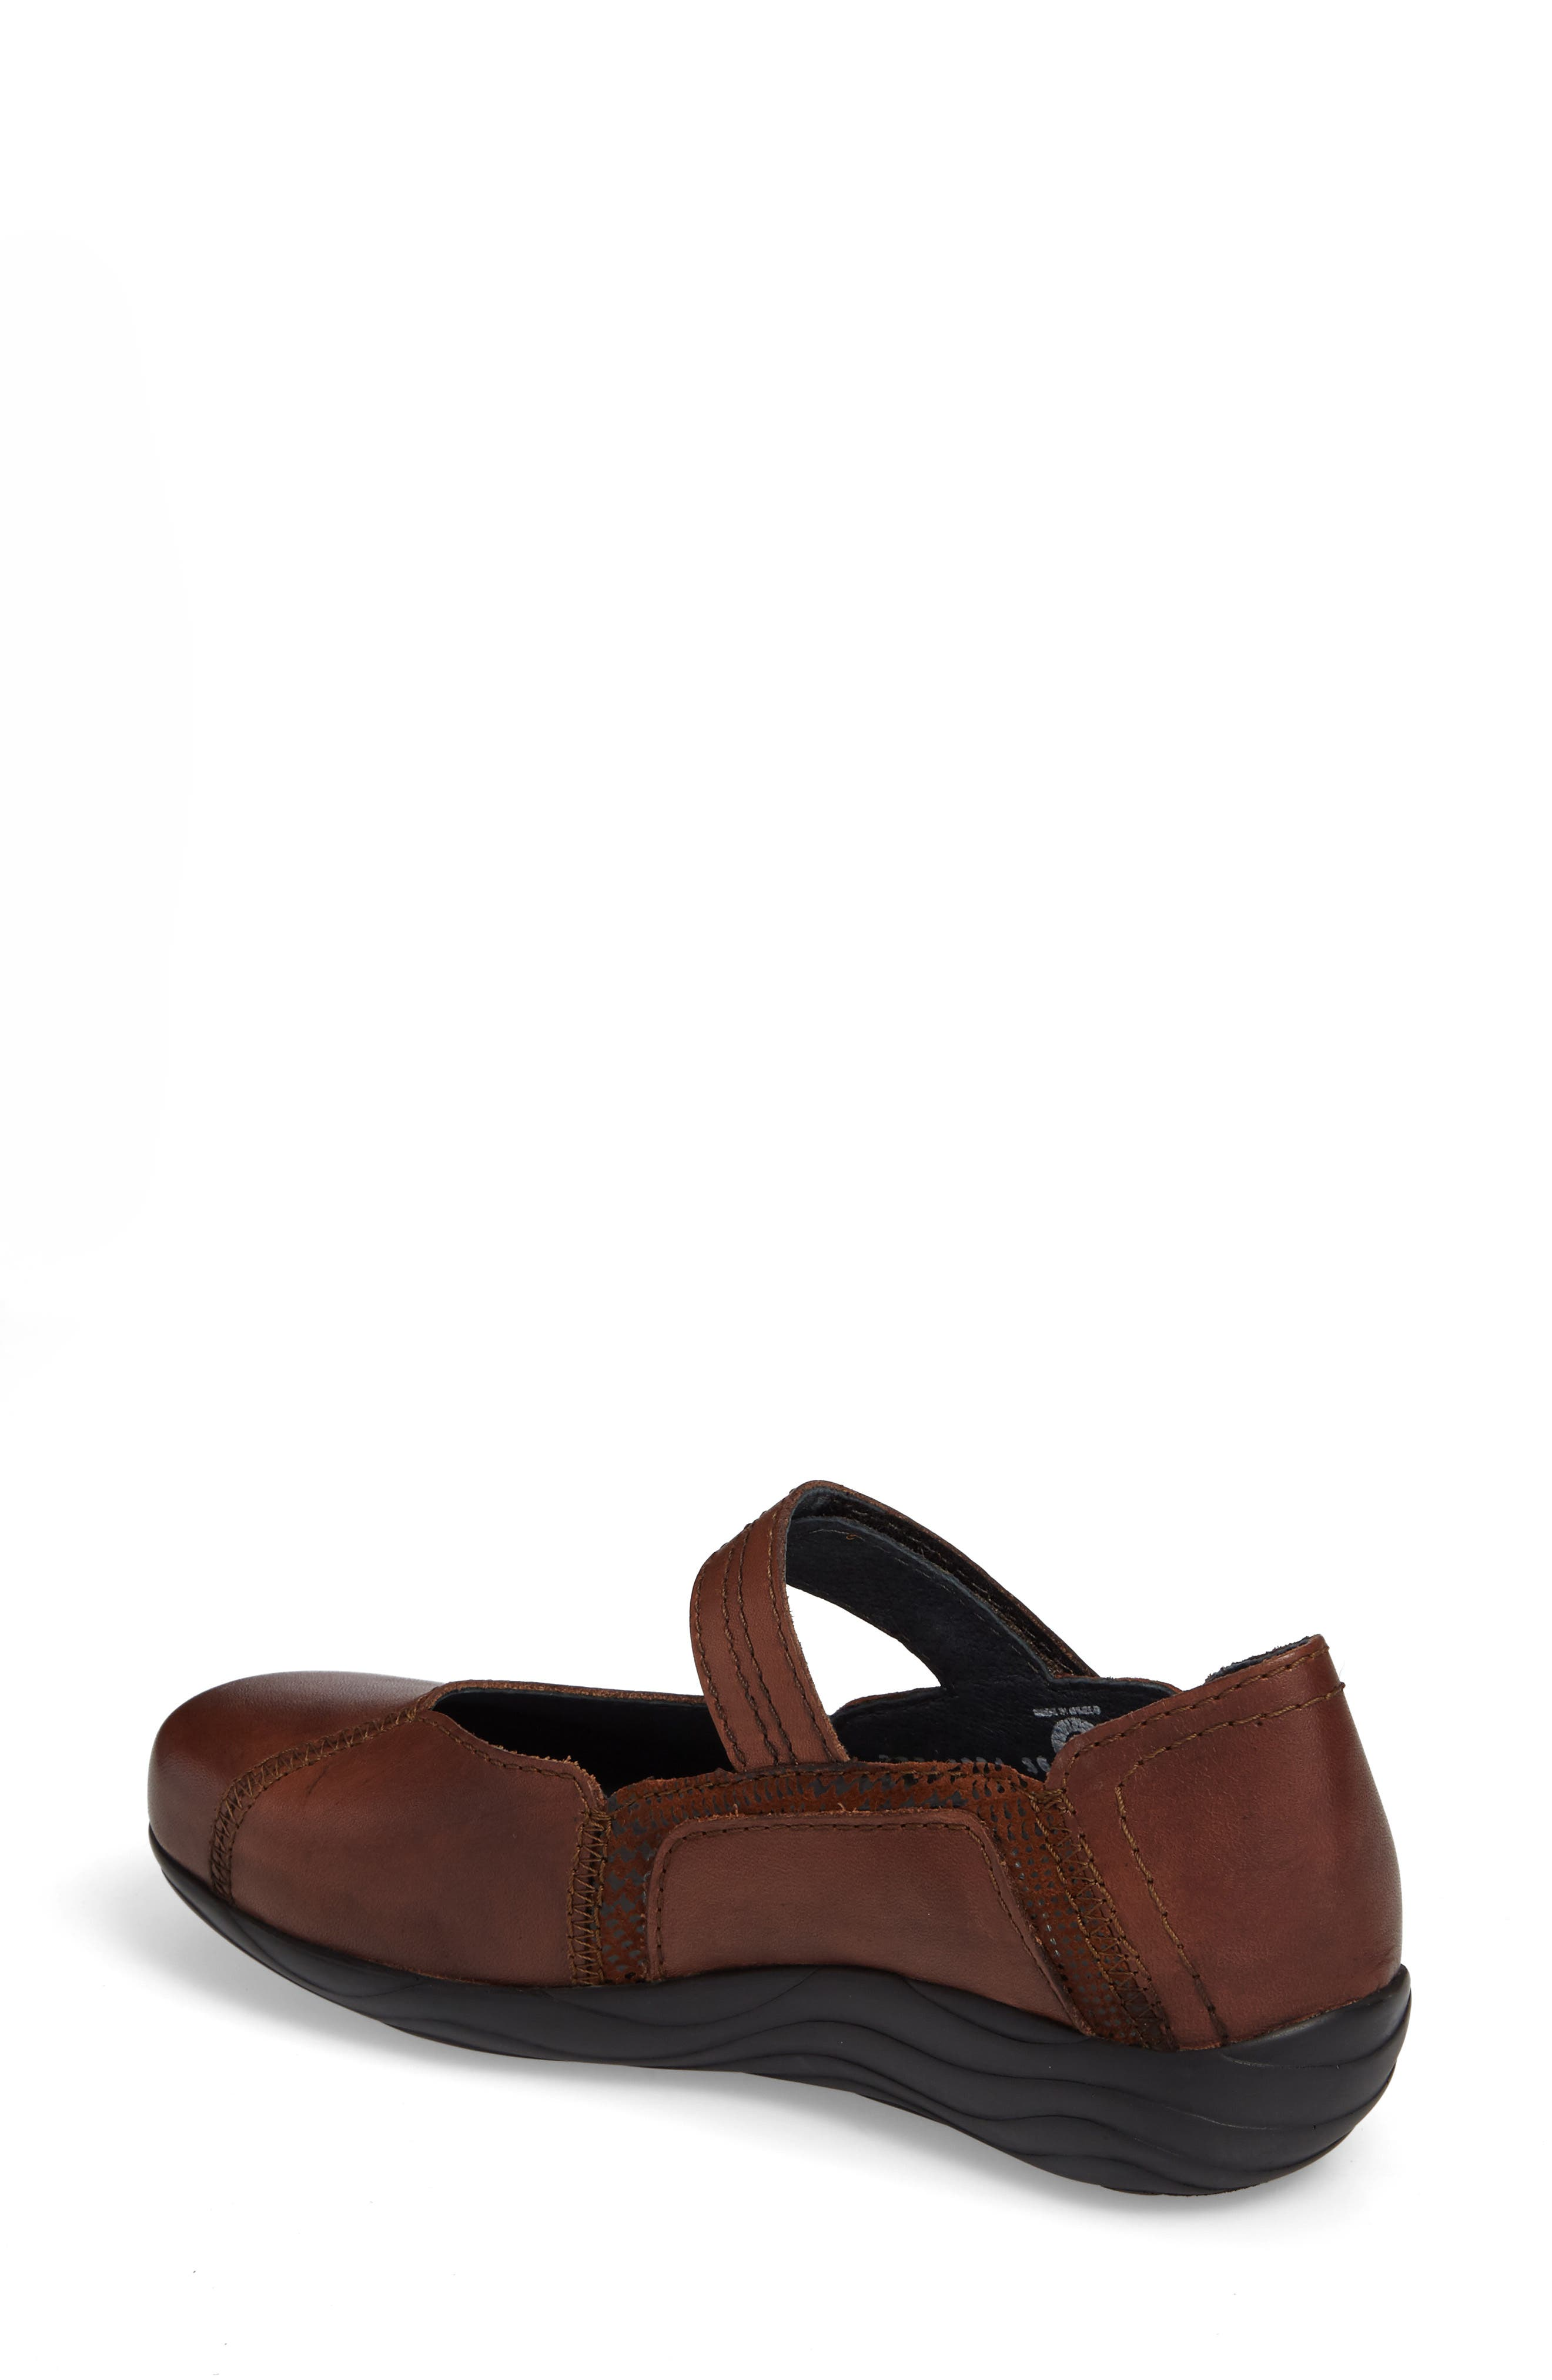 Gila Mary-Jane Flat,                             Alternate thumbnail 2, color,                             Cognac Leather